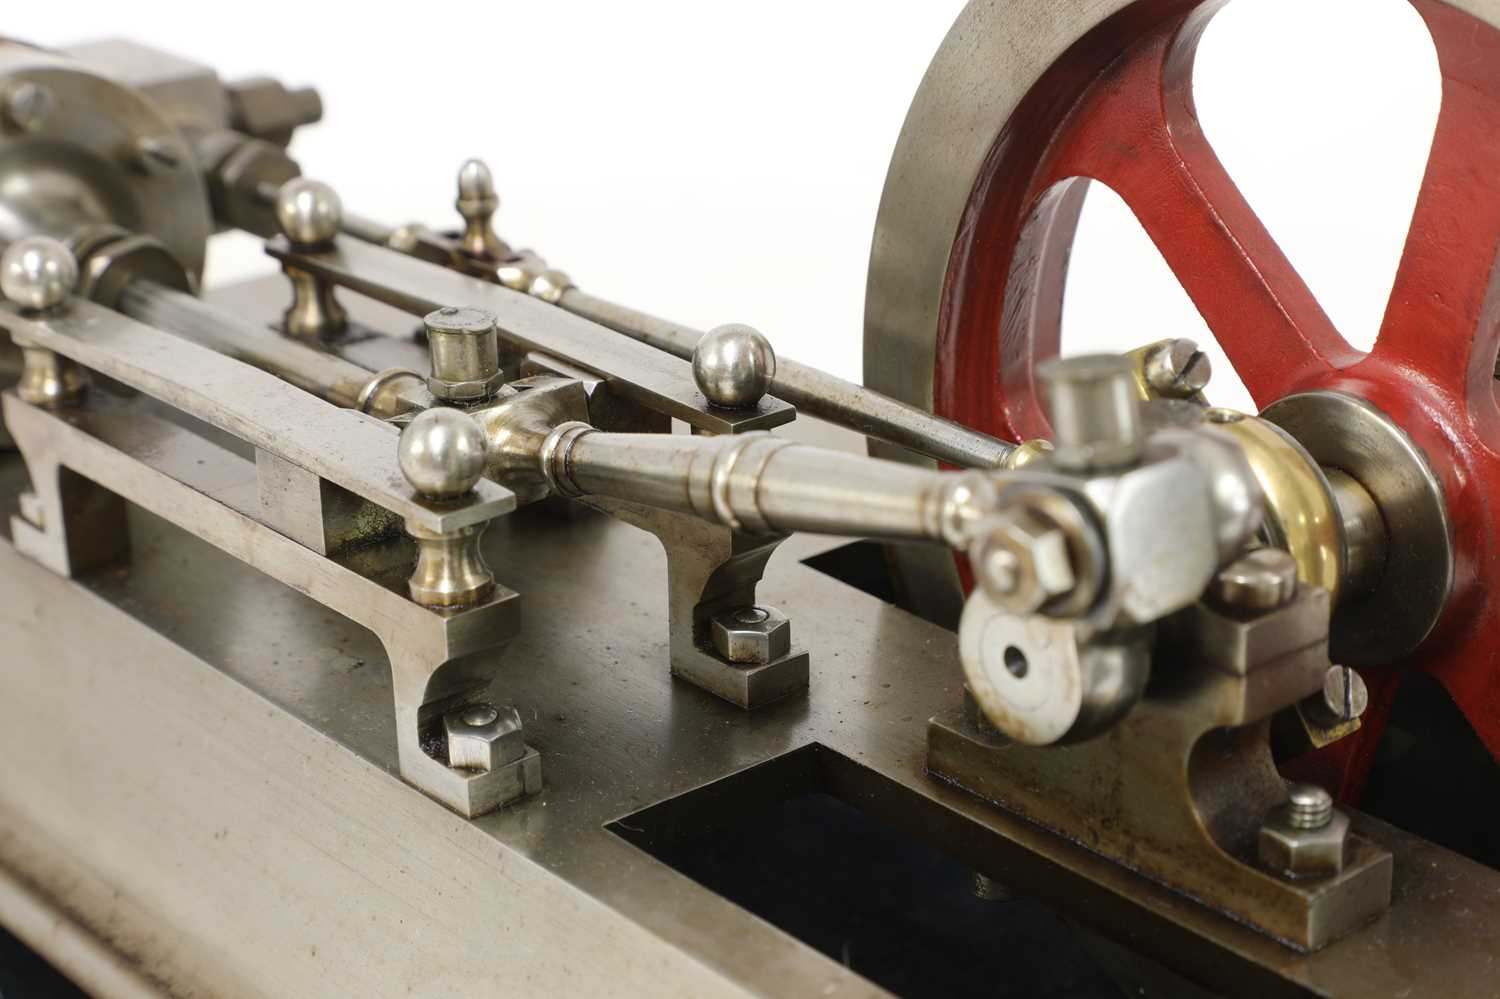 A mill engine apprentice piece, - Image 7 of 8